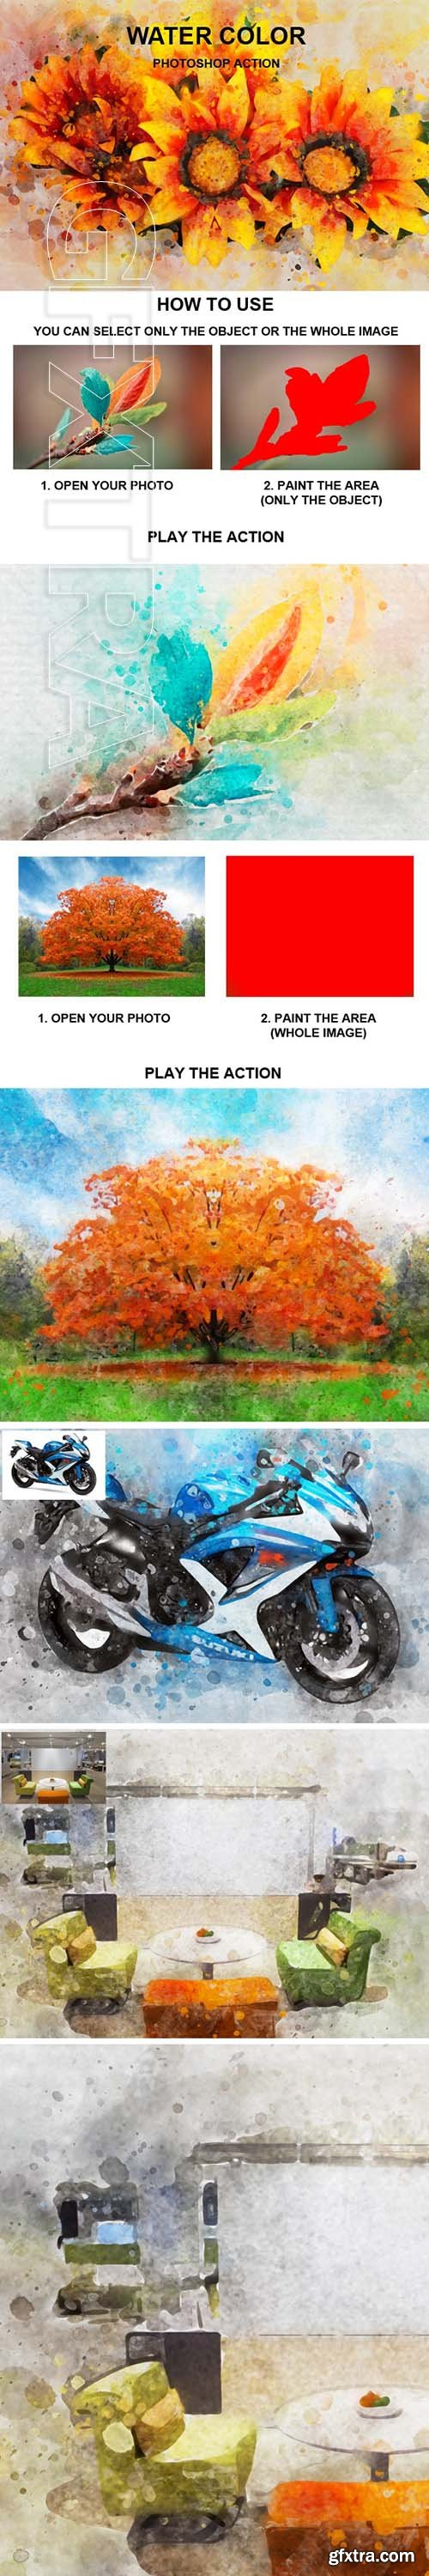 GraphicRiver - Water Color Photoshop Action 24119188